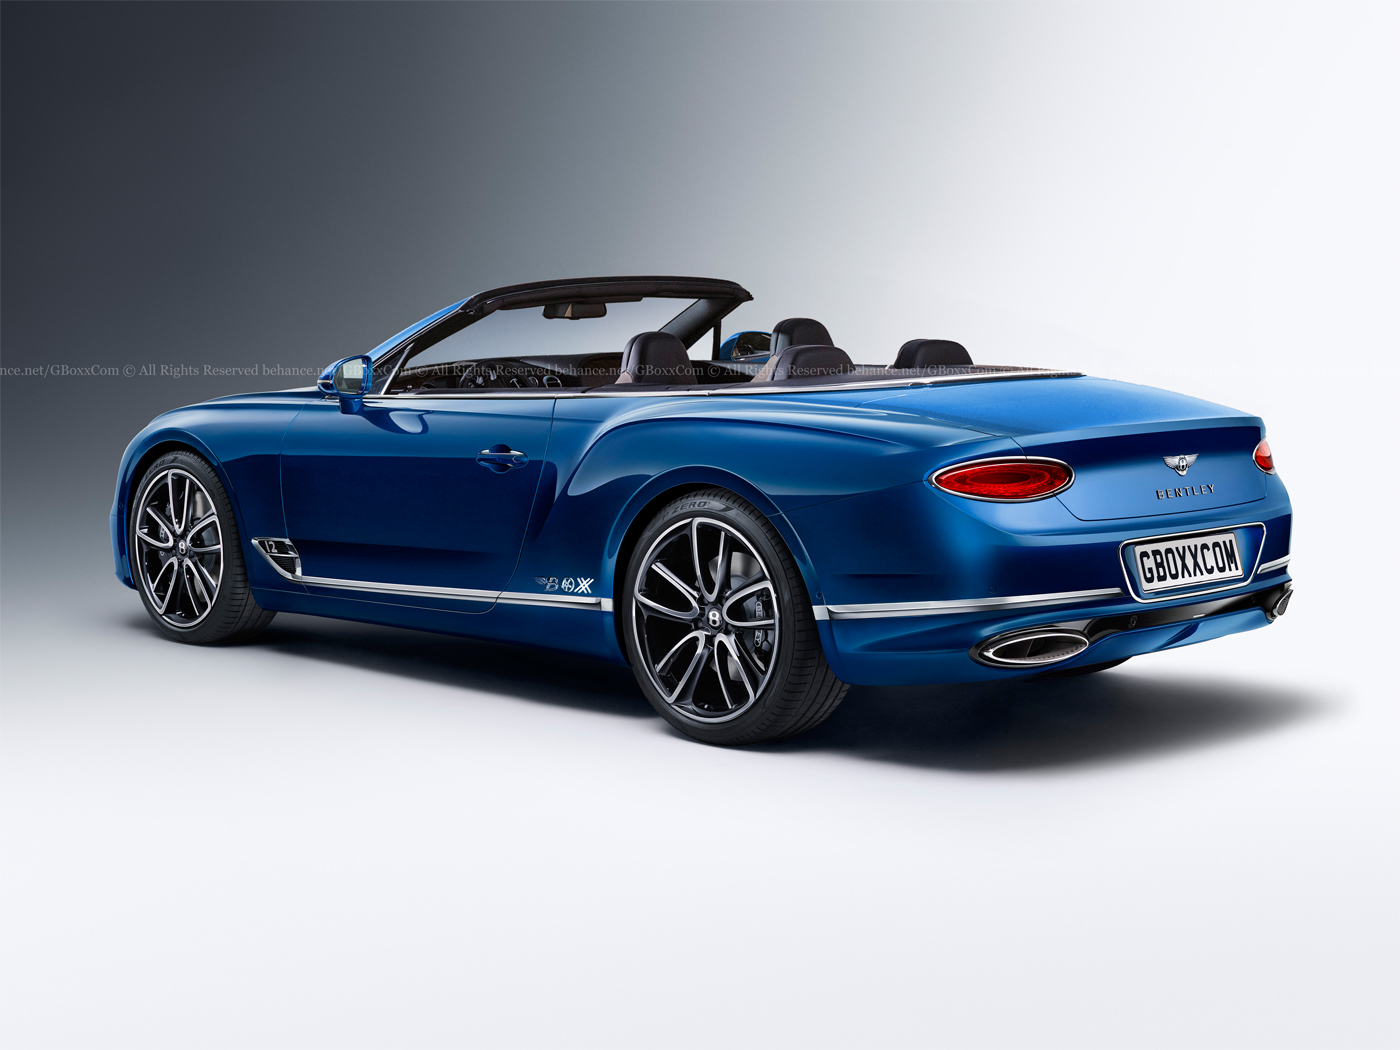 Yes, A 2018 Bentley Continental GT Cabriolet Would Look